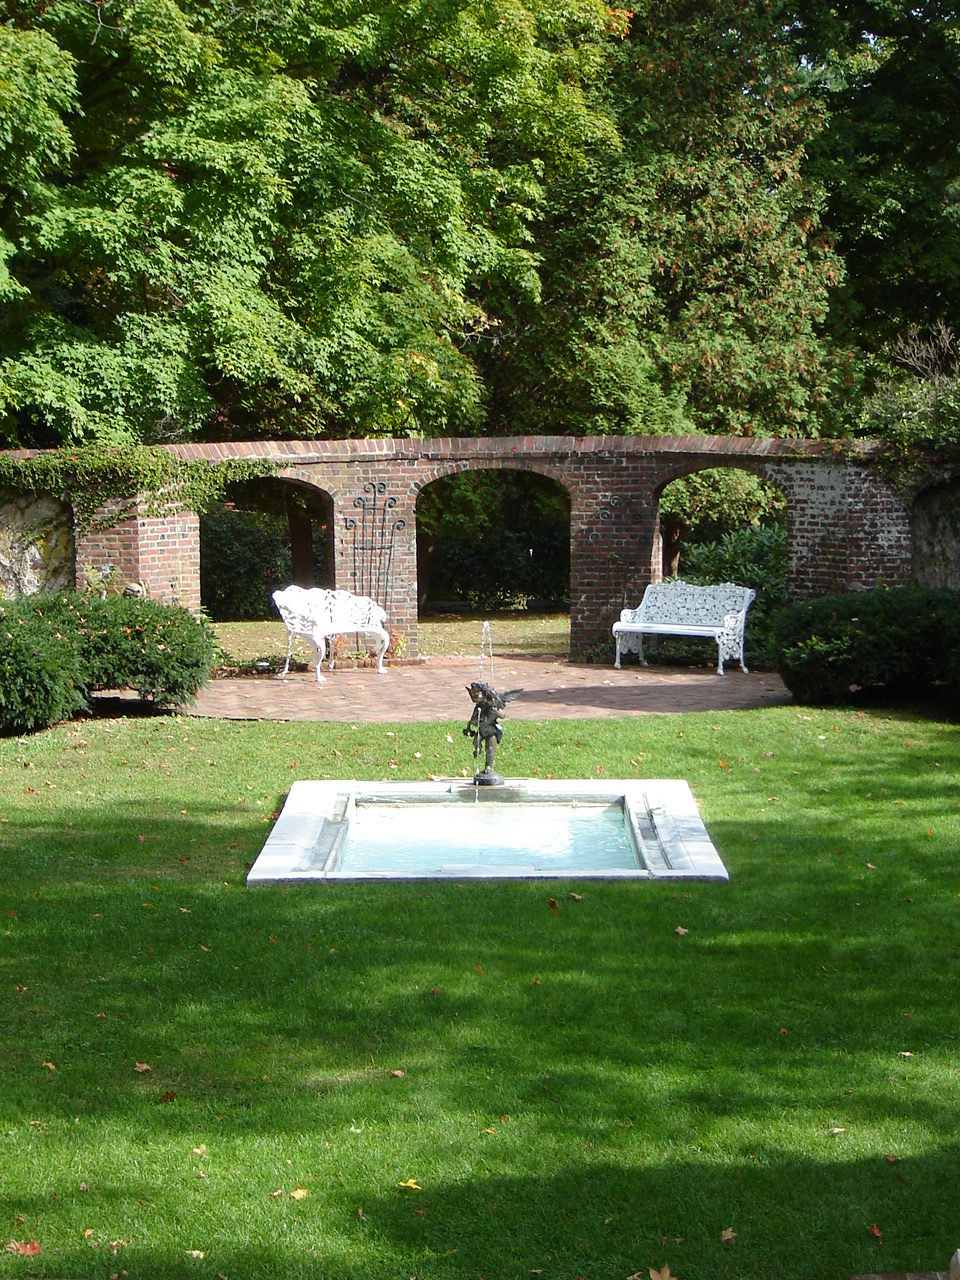 Marvelous Garden House At Cannonball House (now Keeler Tavern), Ridgefield, CT Part 24